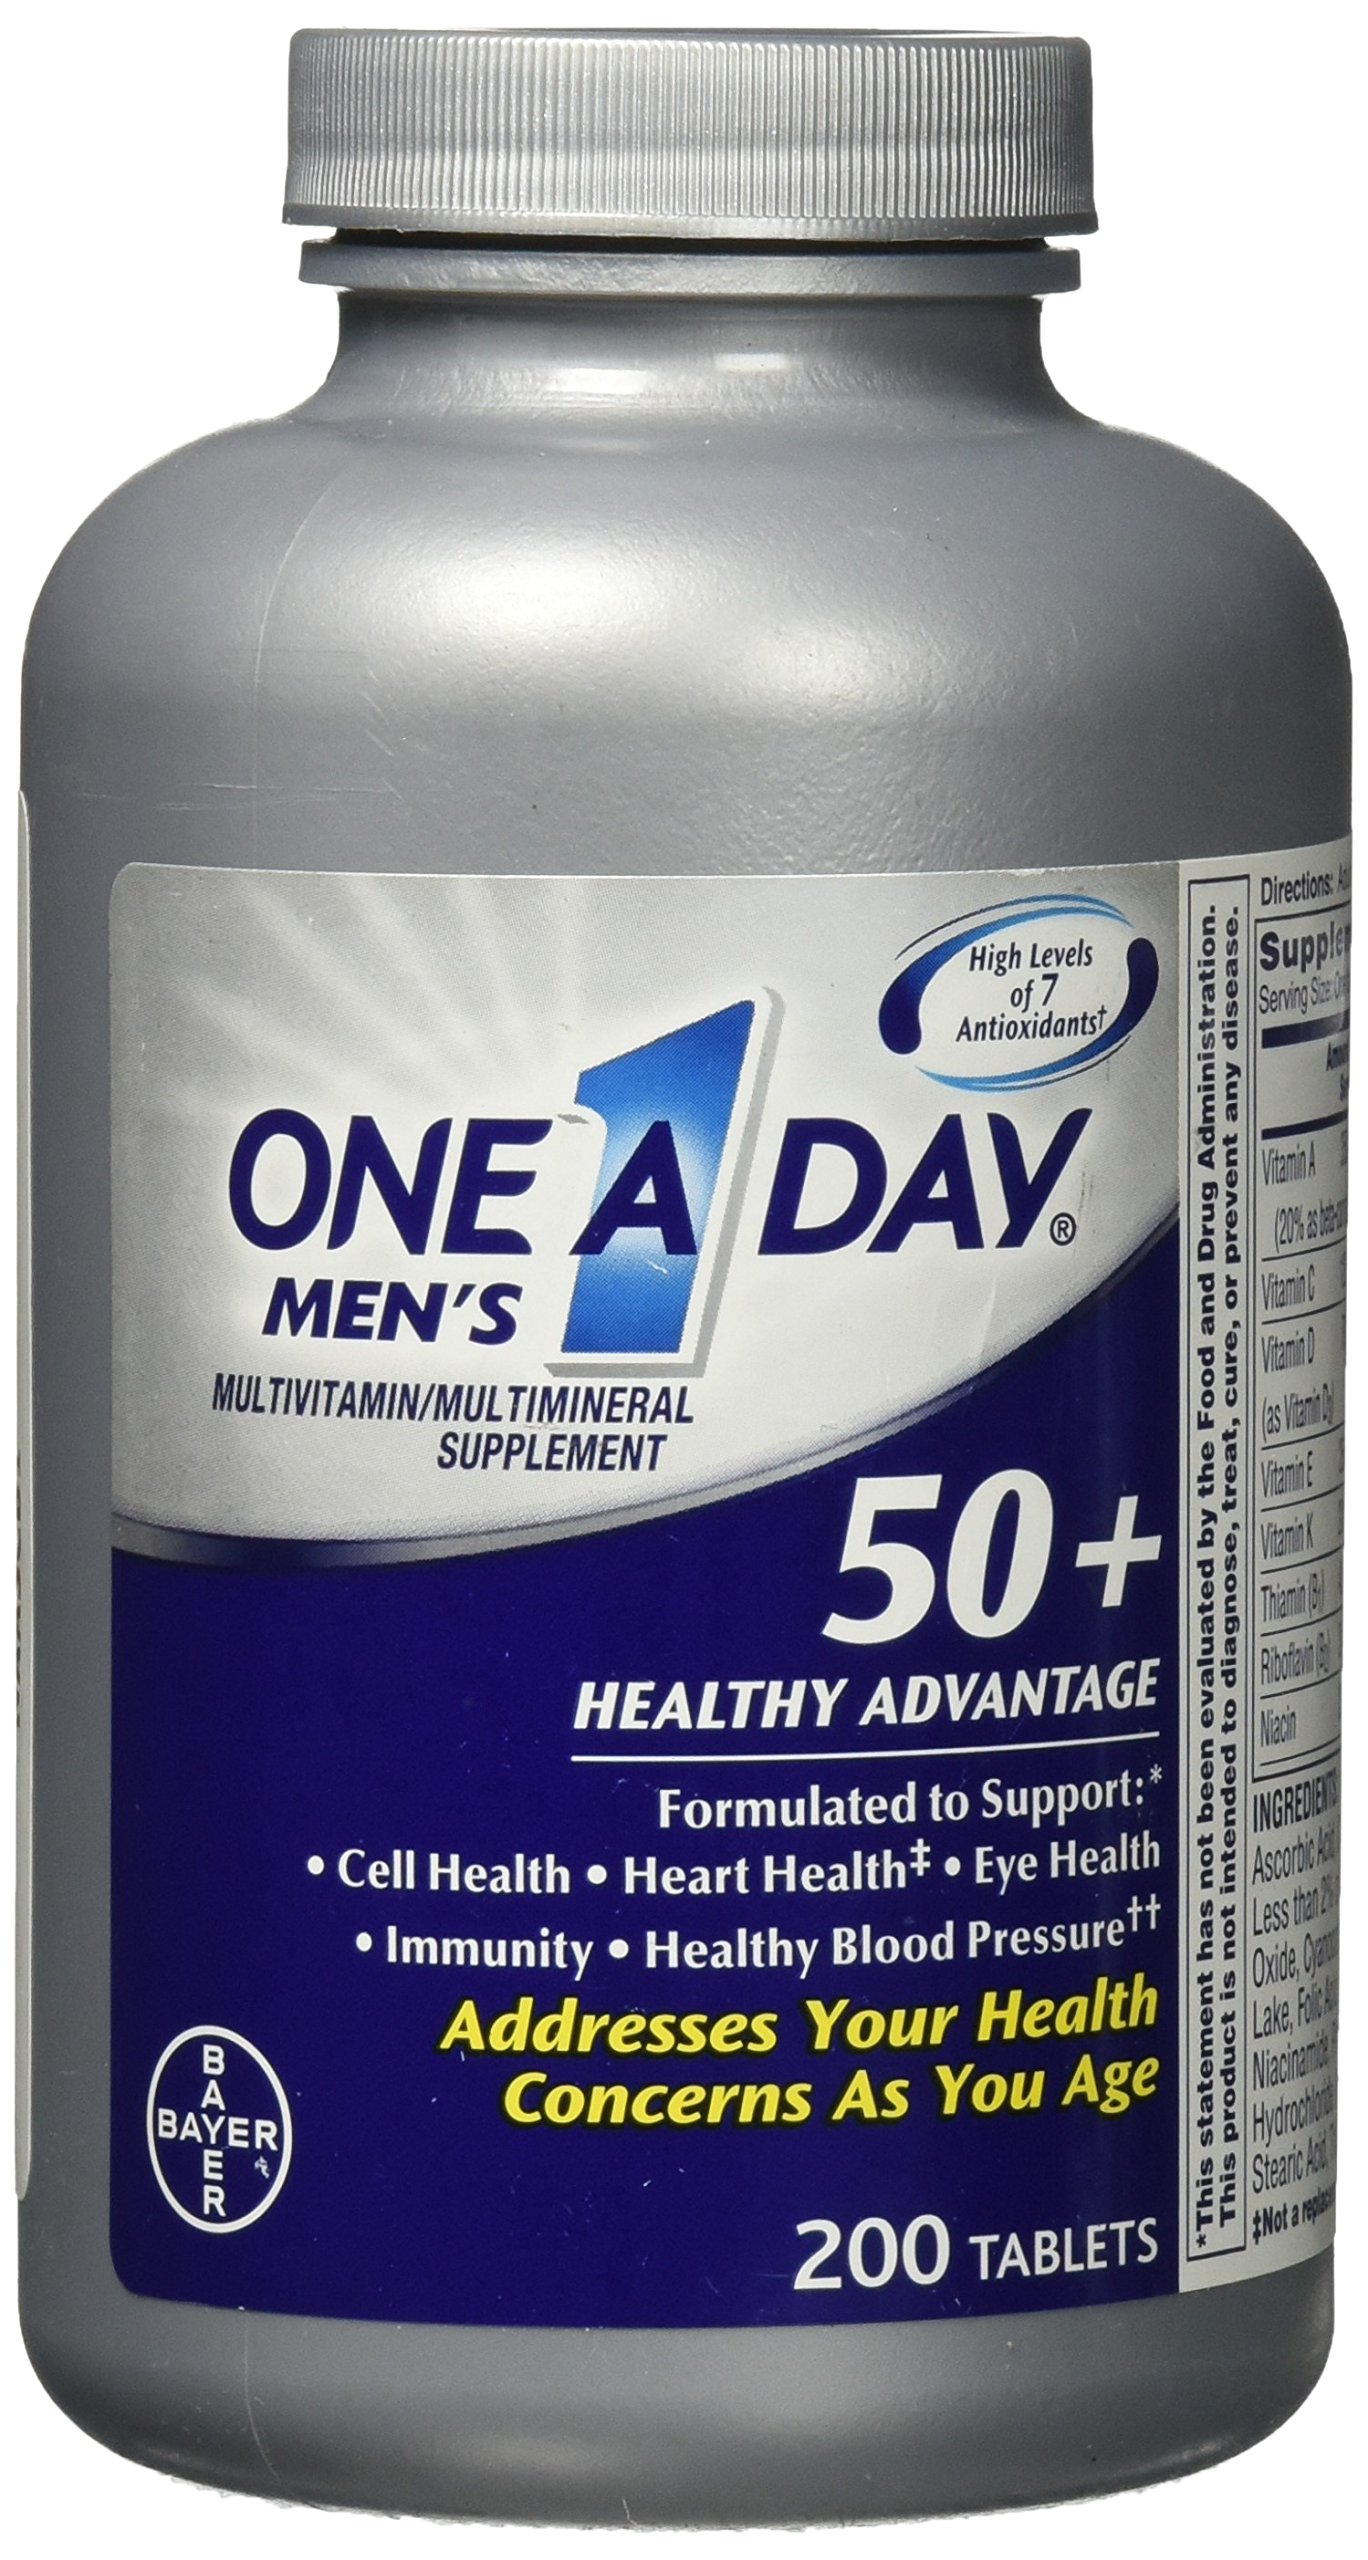 One-A-Day Mens 50 Healthy Advantage Reviews